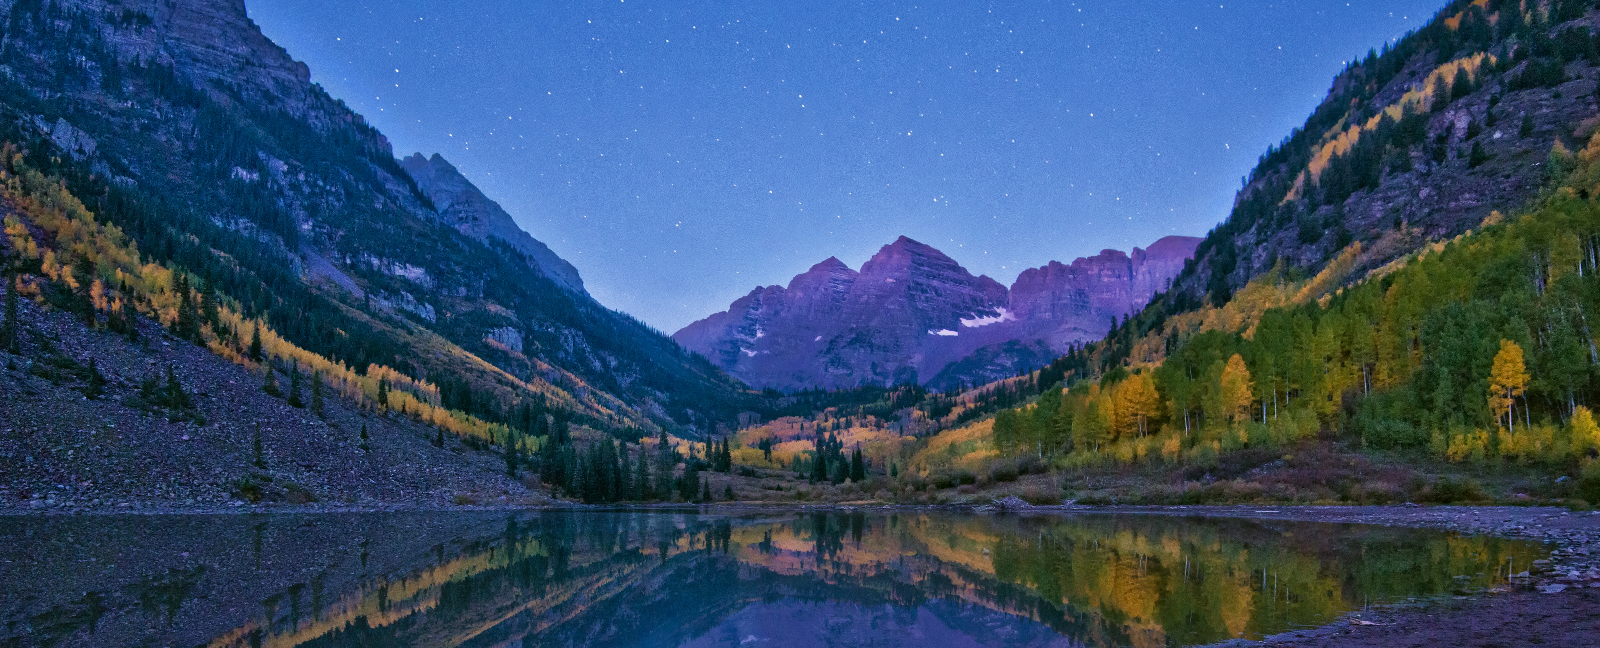 Alpenglow Maroon Bells, Maroon Lake, Colorado